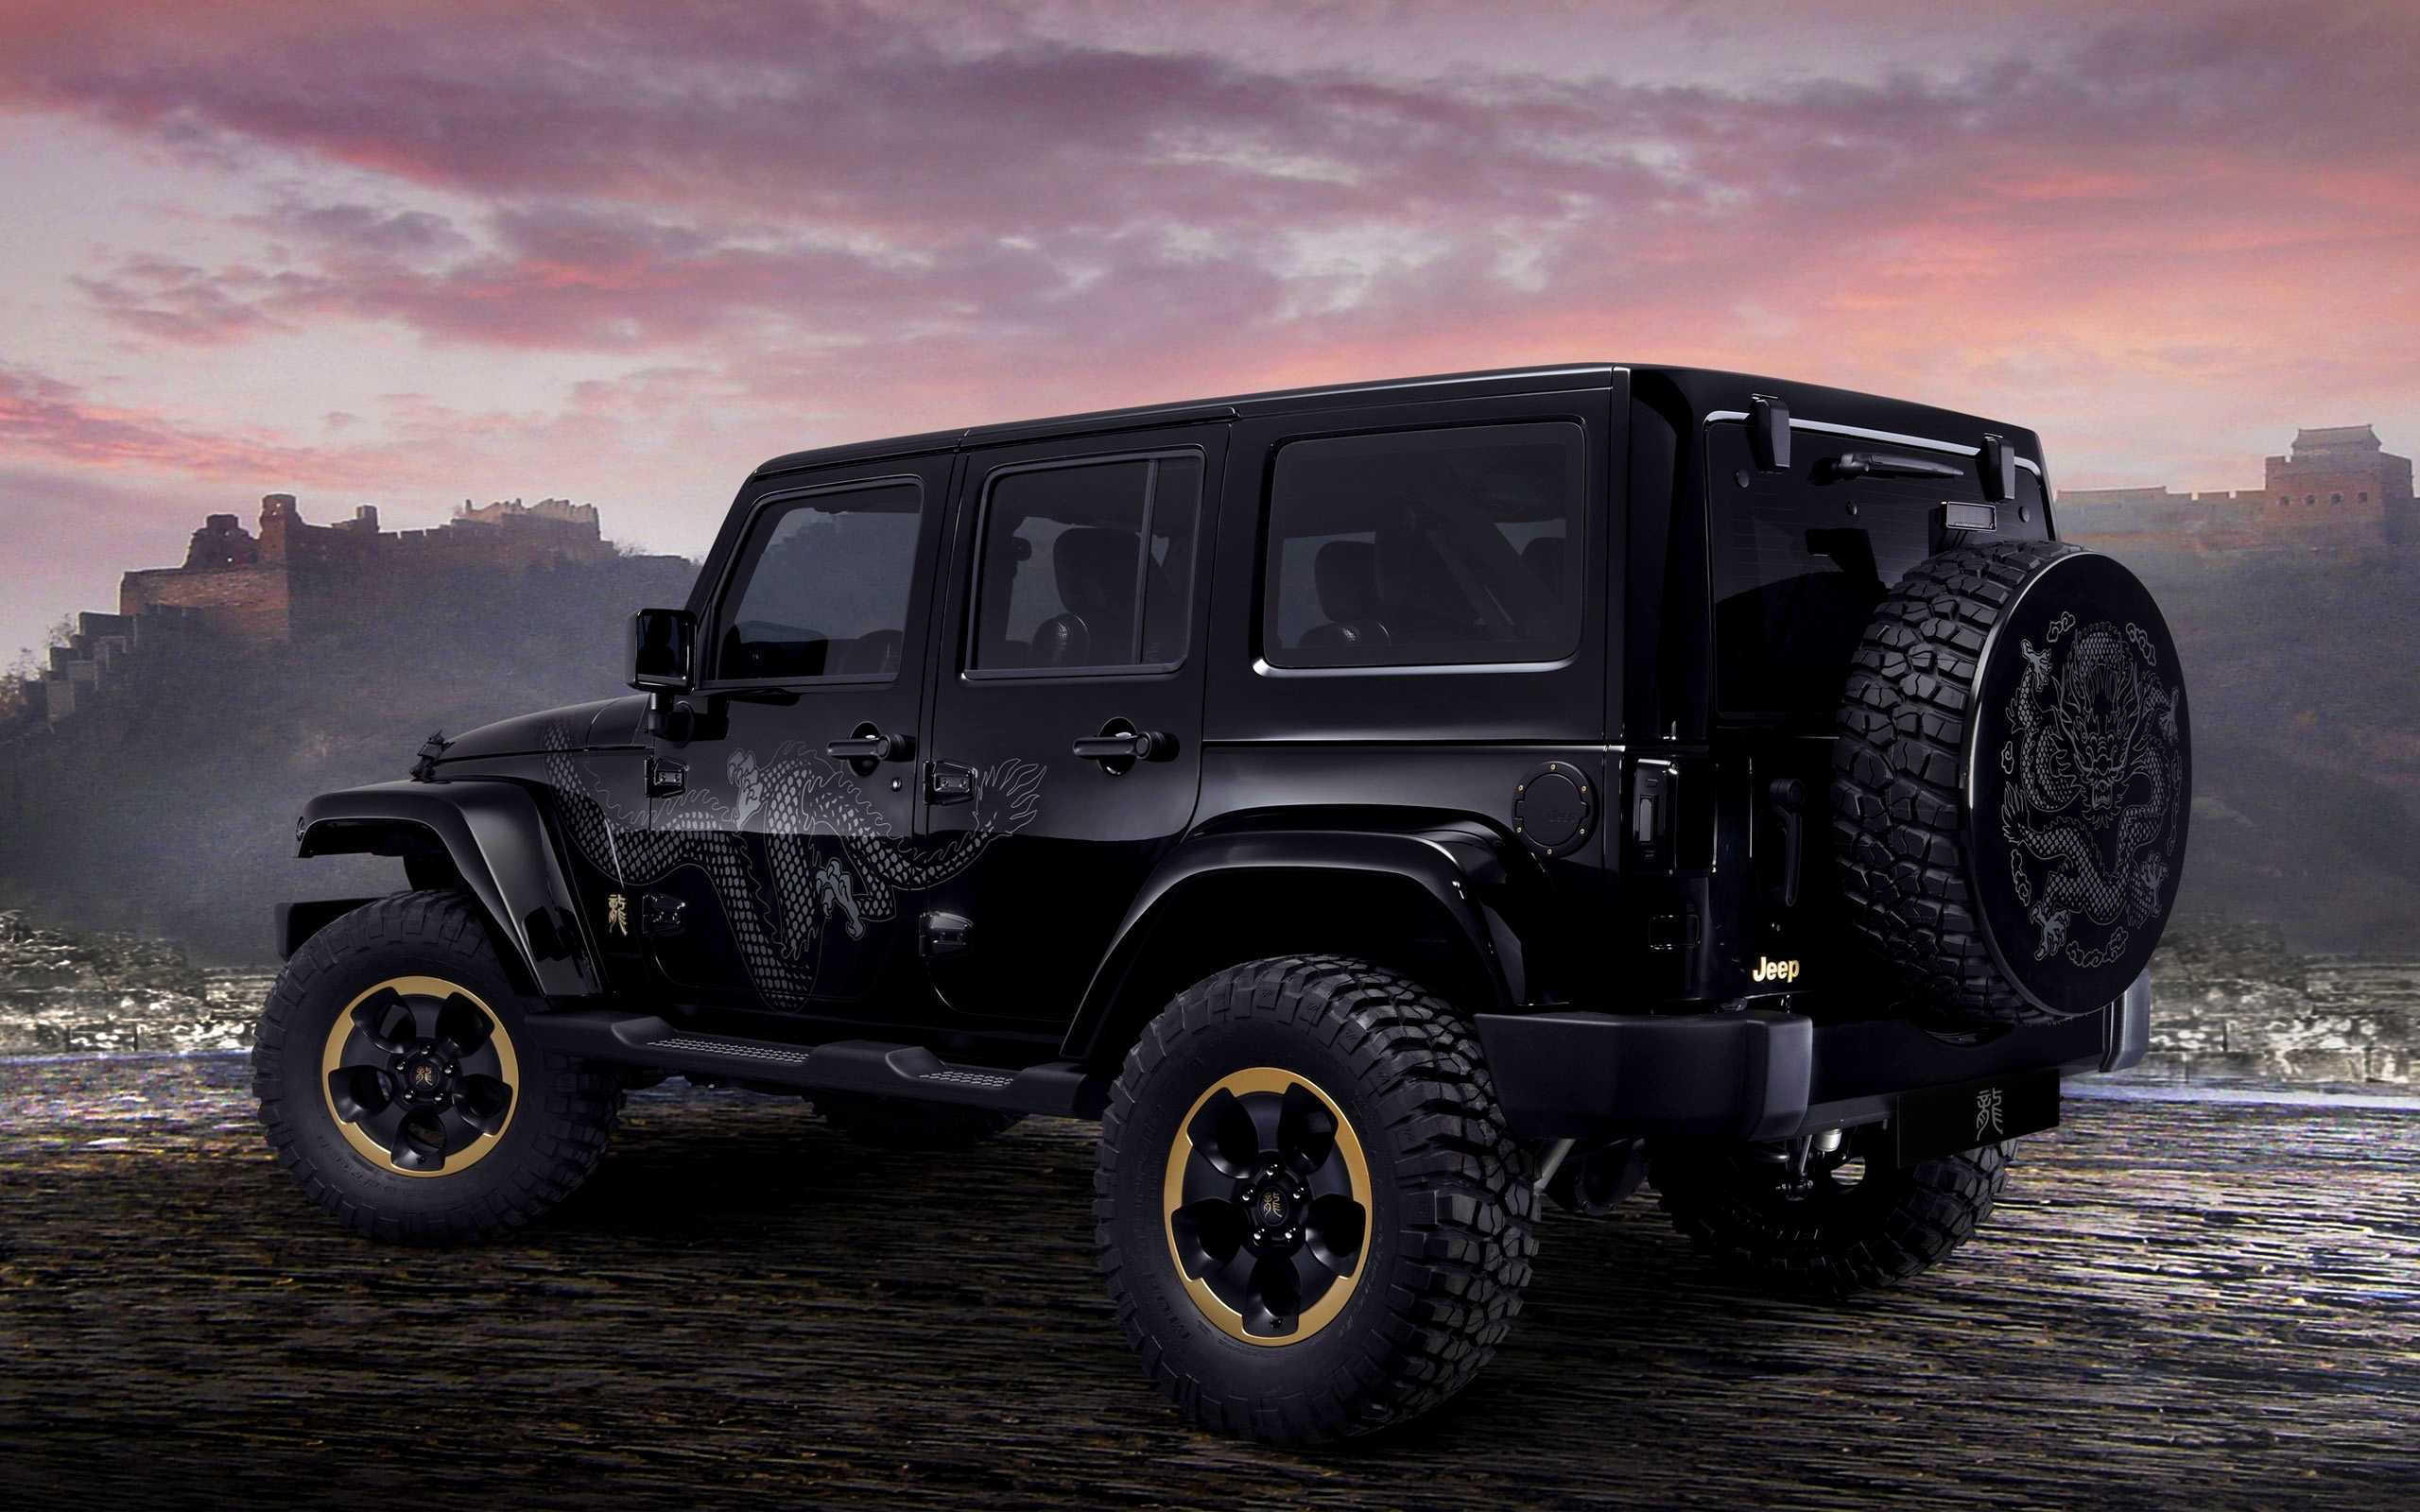 Backgrounds For Jeep Wrangler Hd Backgrounds Wallpapers High Quality